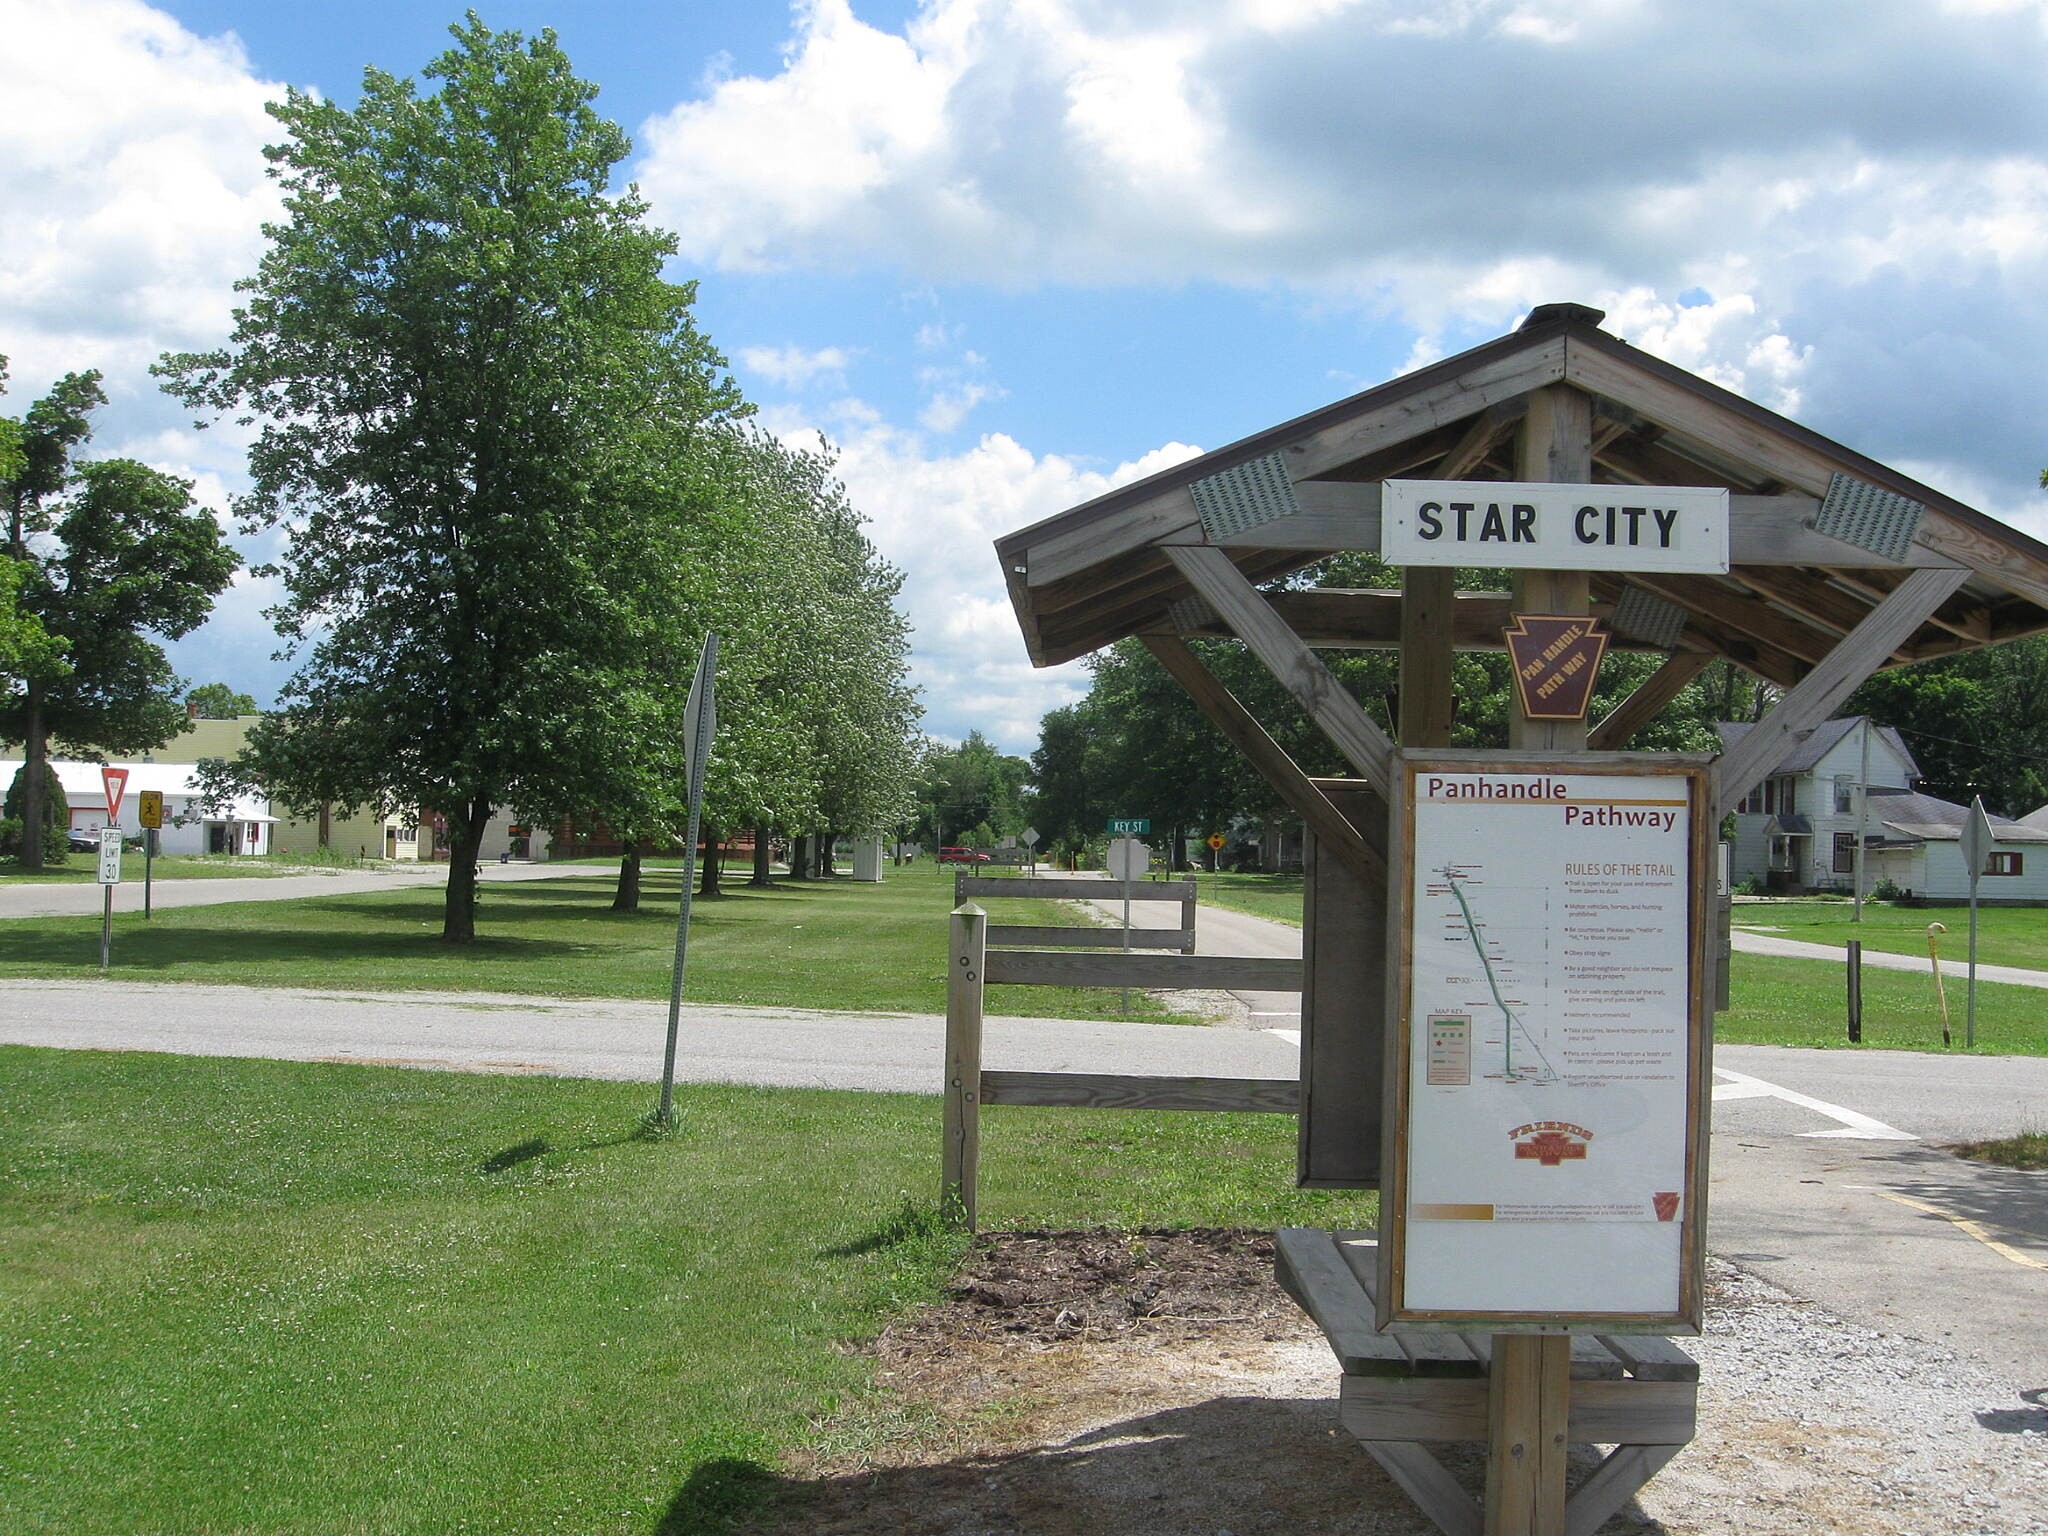 Panhandle Pathway Star City